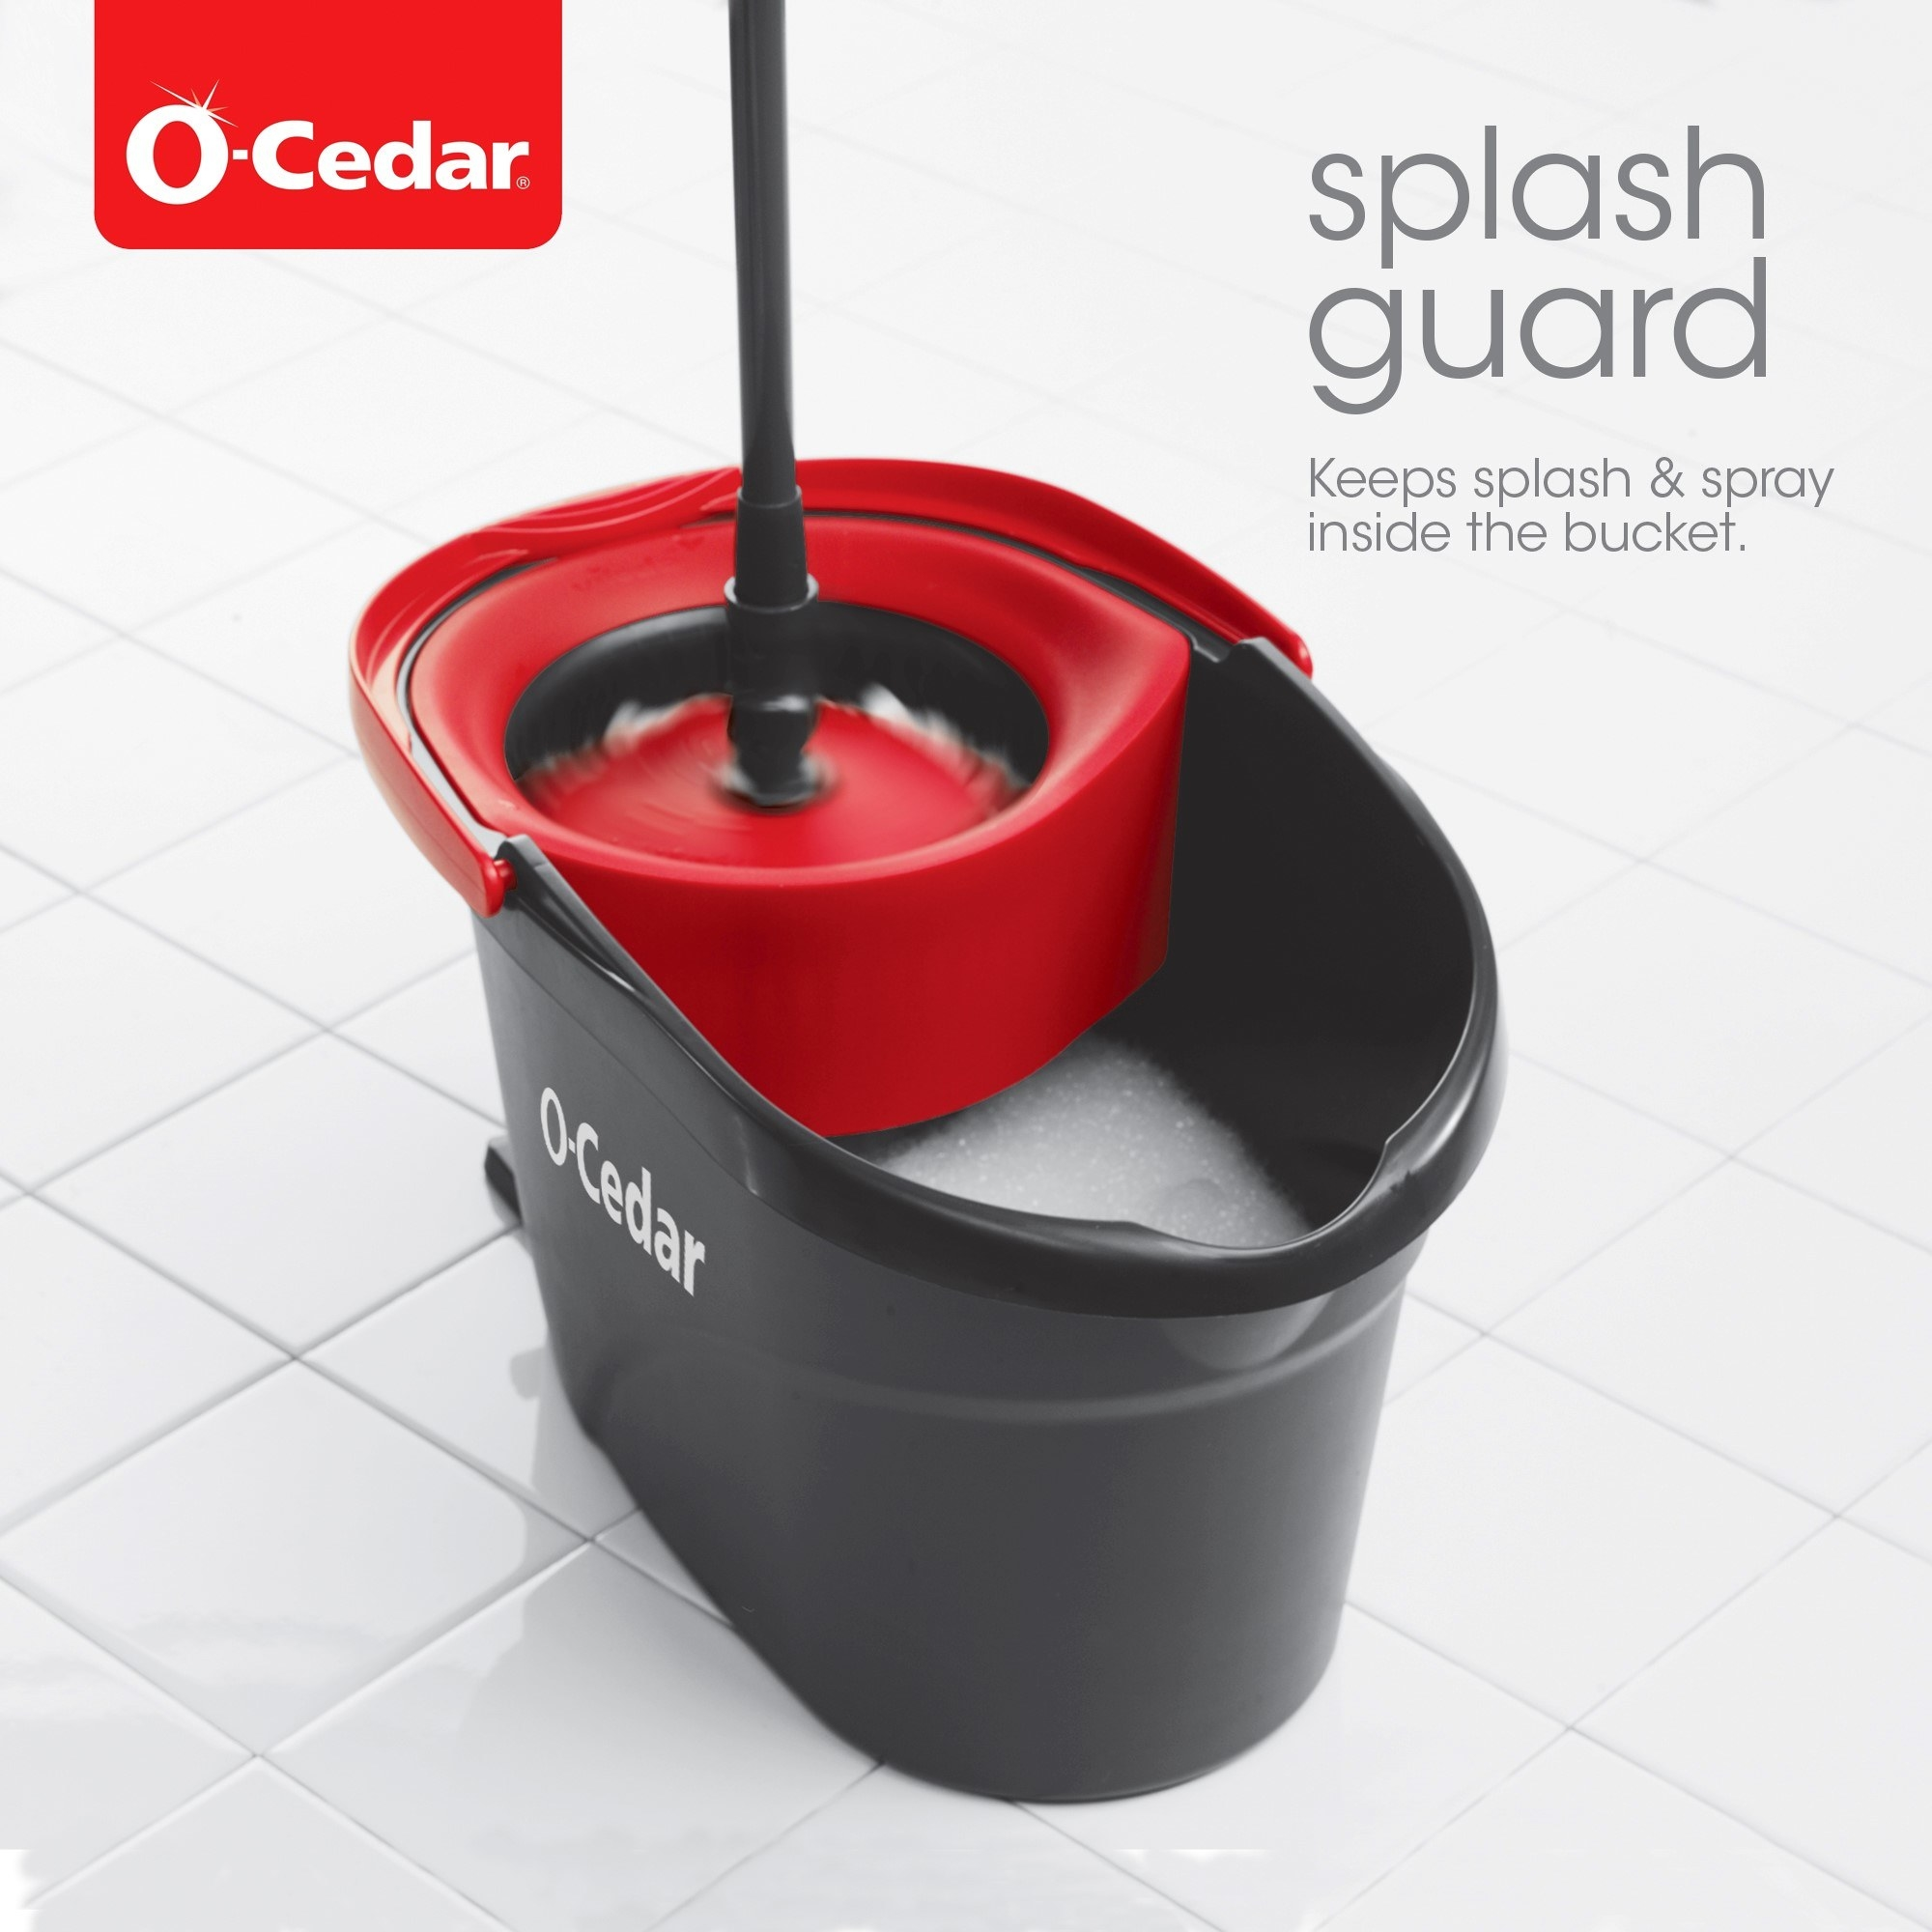 Black bucket with O-Cedar logo in white and red foot pedal/detailing next to mop with black handle, red mop head with white brush